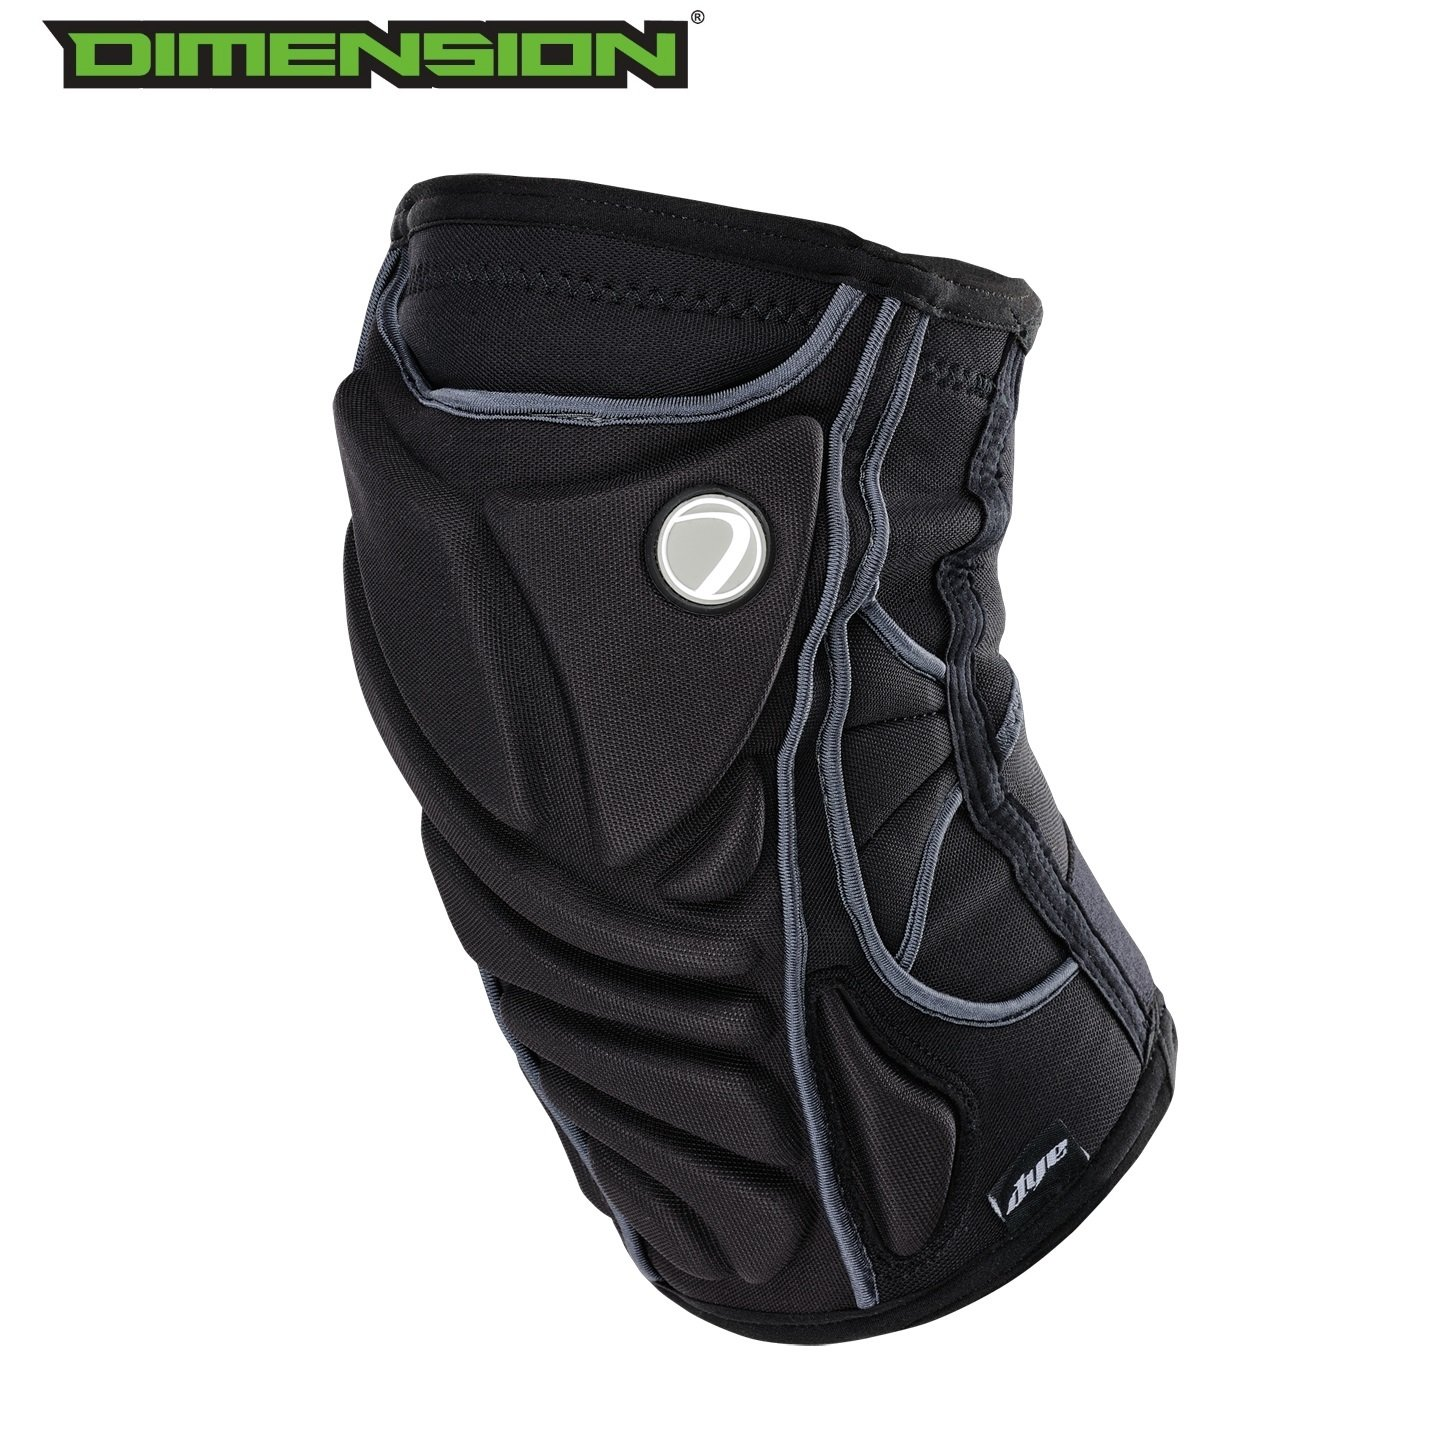 Dye Performance Knee Pads - Black - Medium